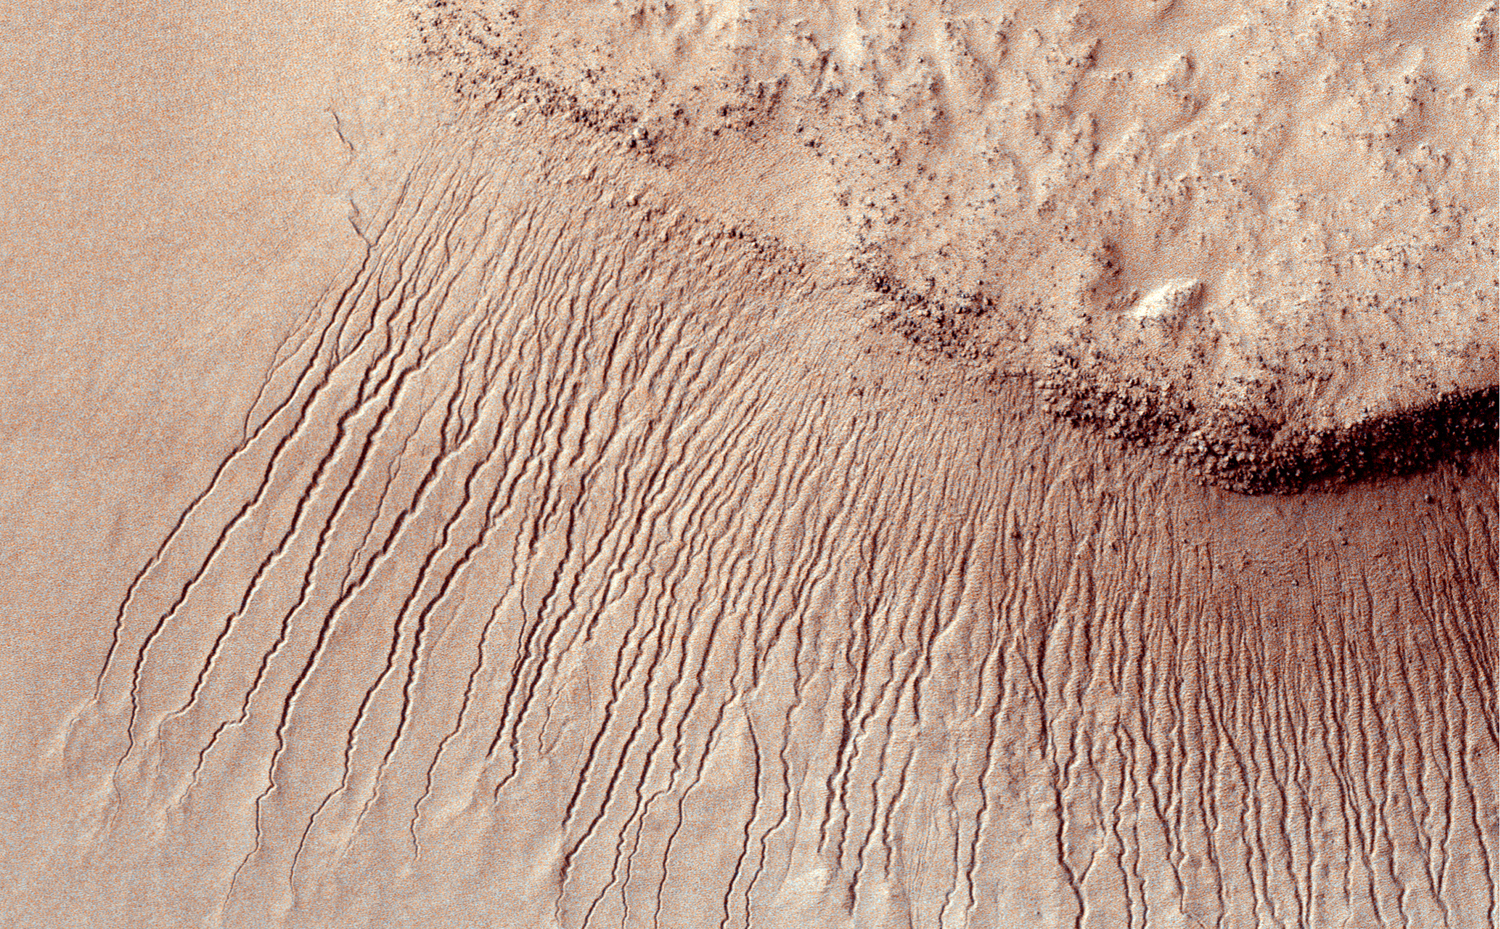 Images like this from the High Resolution Imaging Science  Experiment (HiRISE) camera on NASA's Mars Reconnaissance Orbiter show portions  of the Martian surface in unprecedented detail.